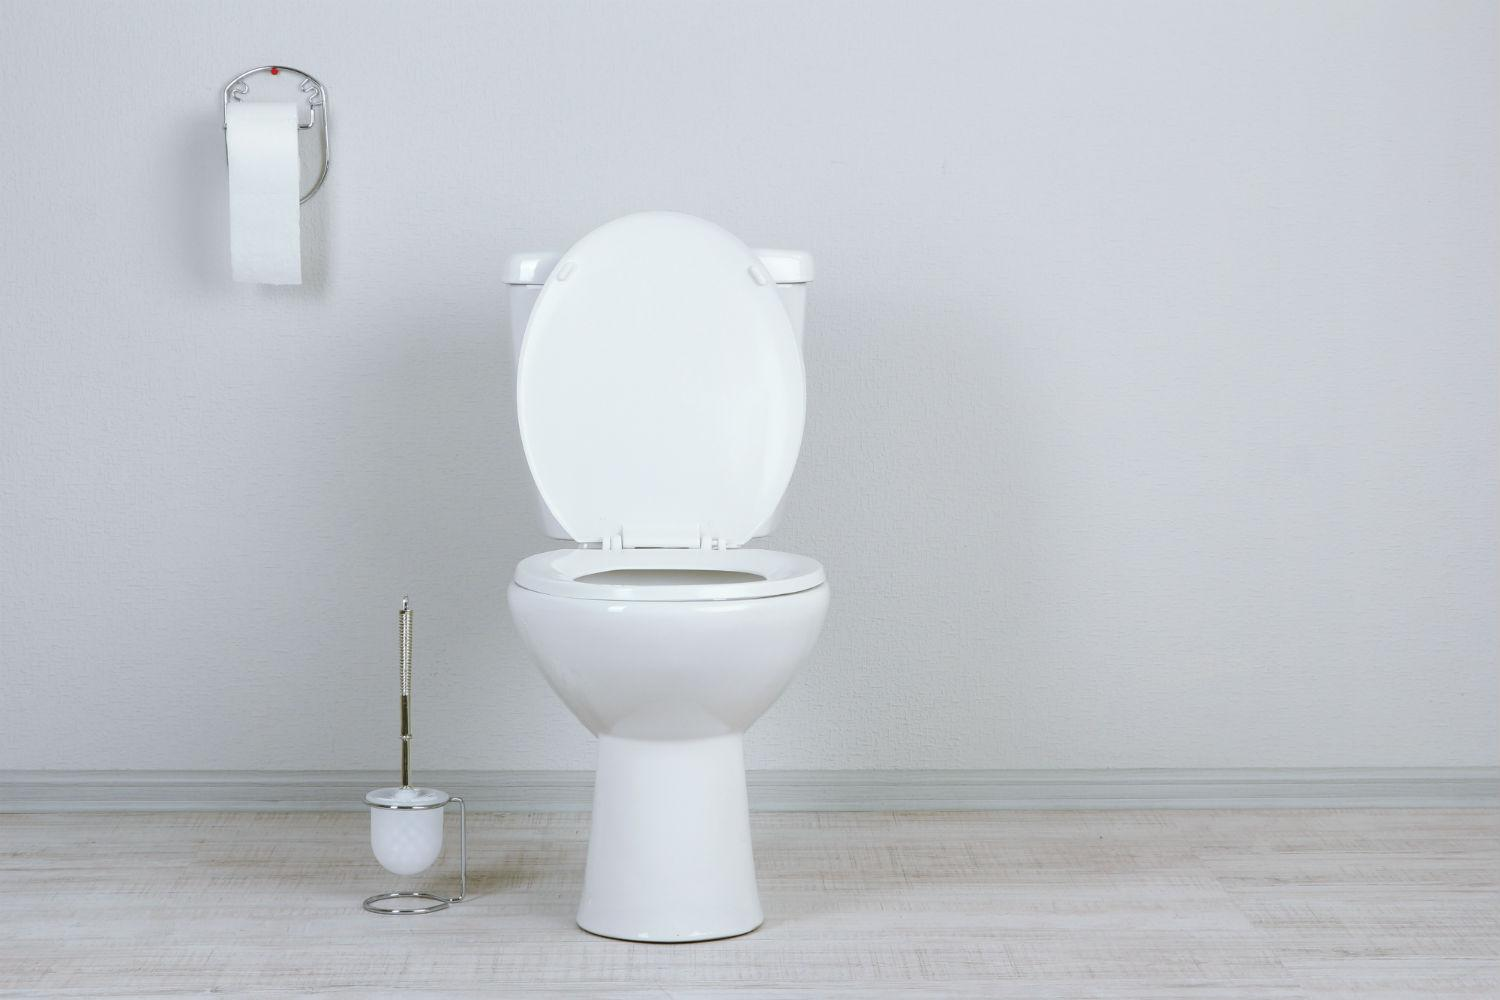 How To Unclog A Toilet Digital Trends